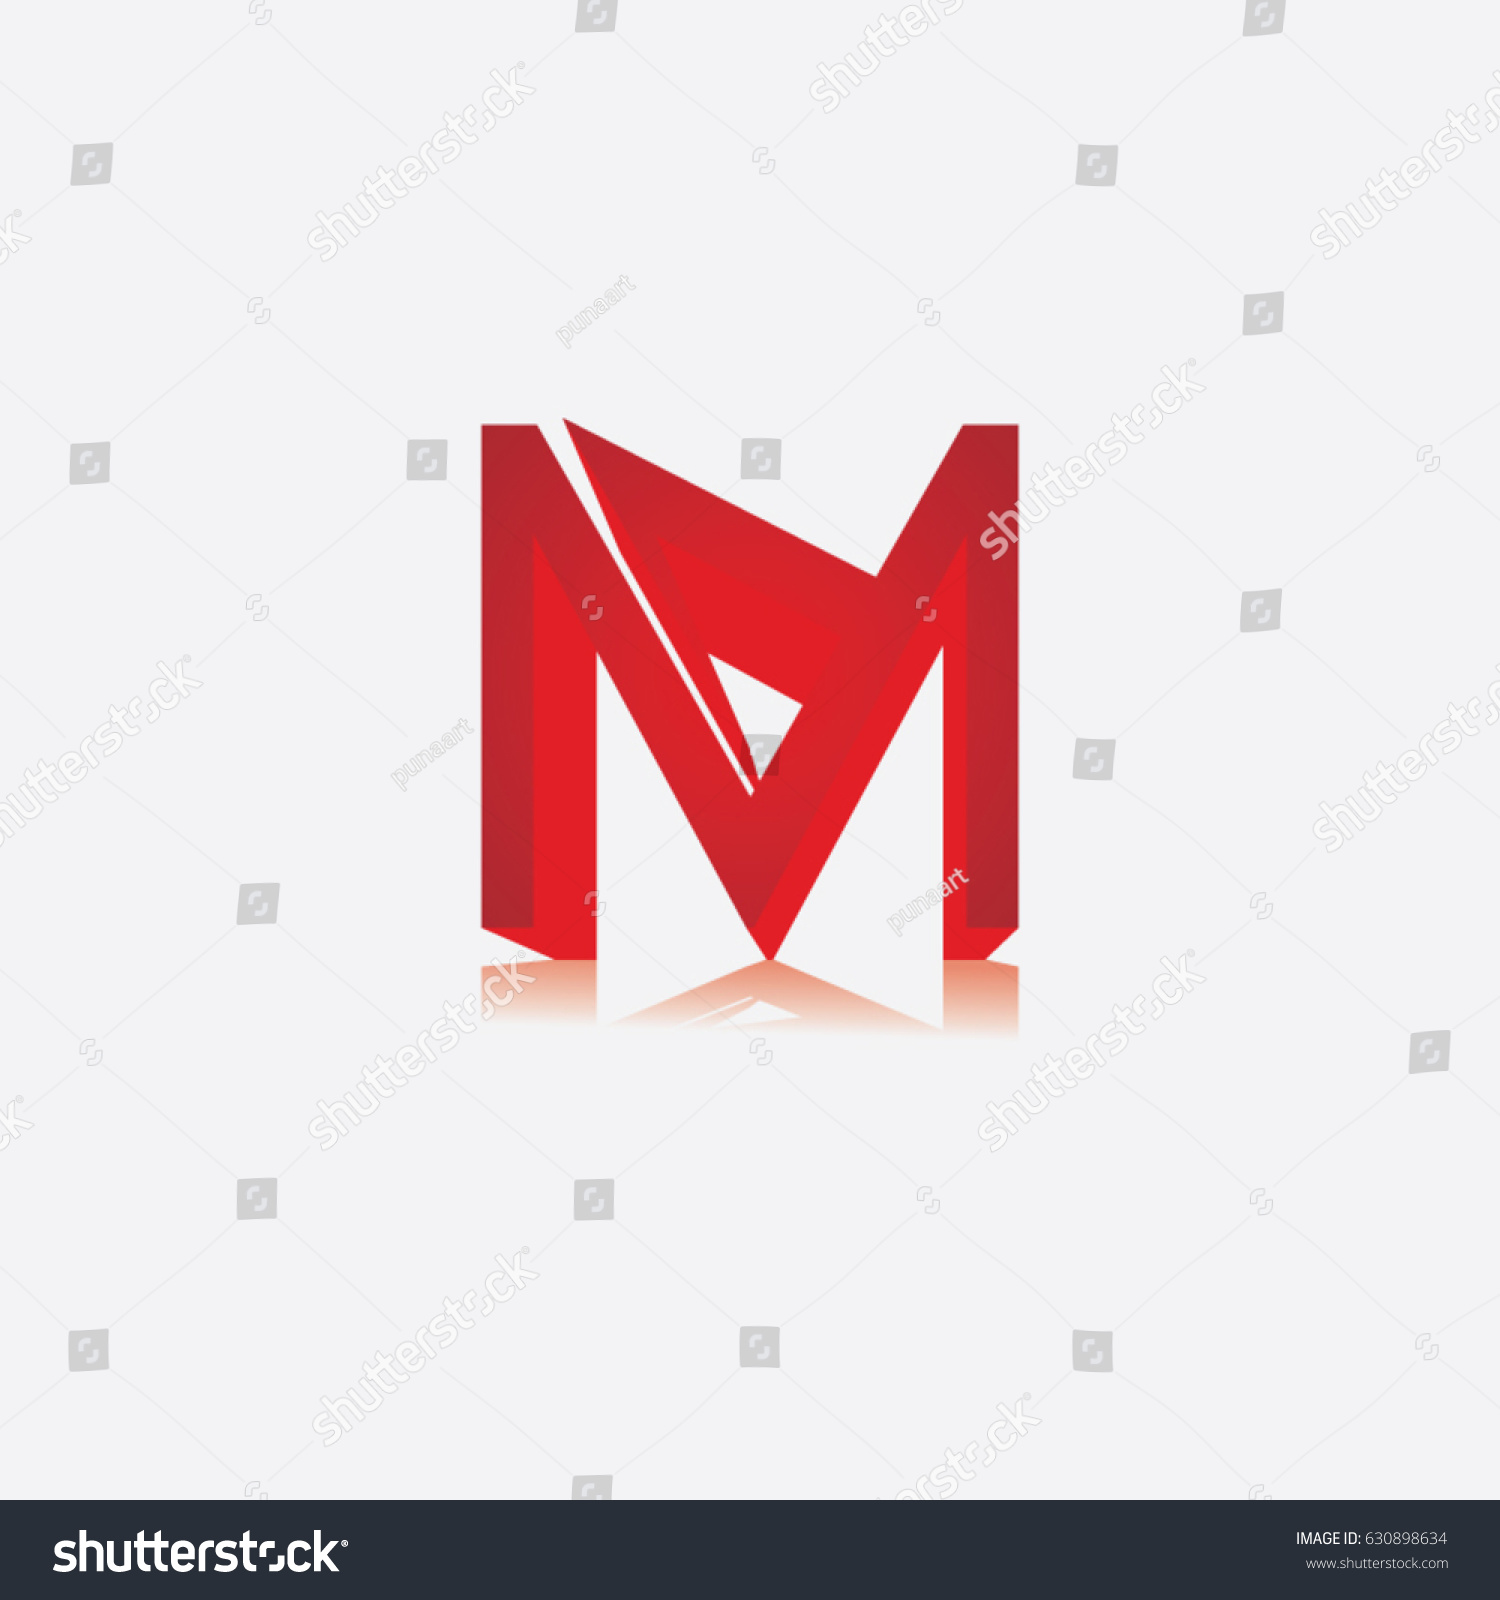 letter m logo stock vector image 63388199 letter m icon logo stock vector 630898634 822